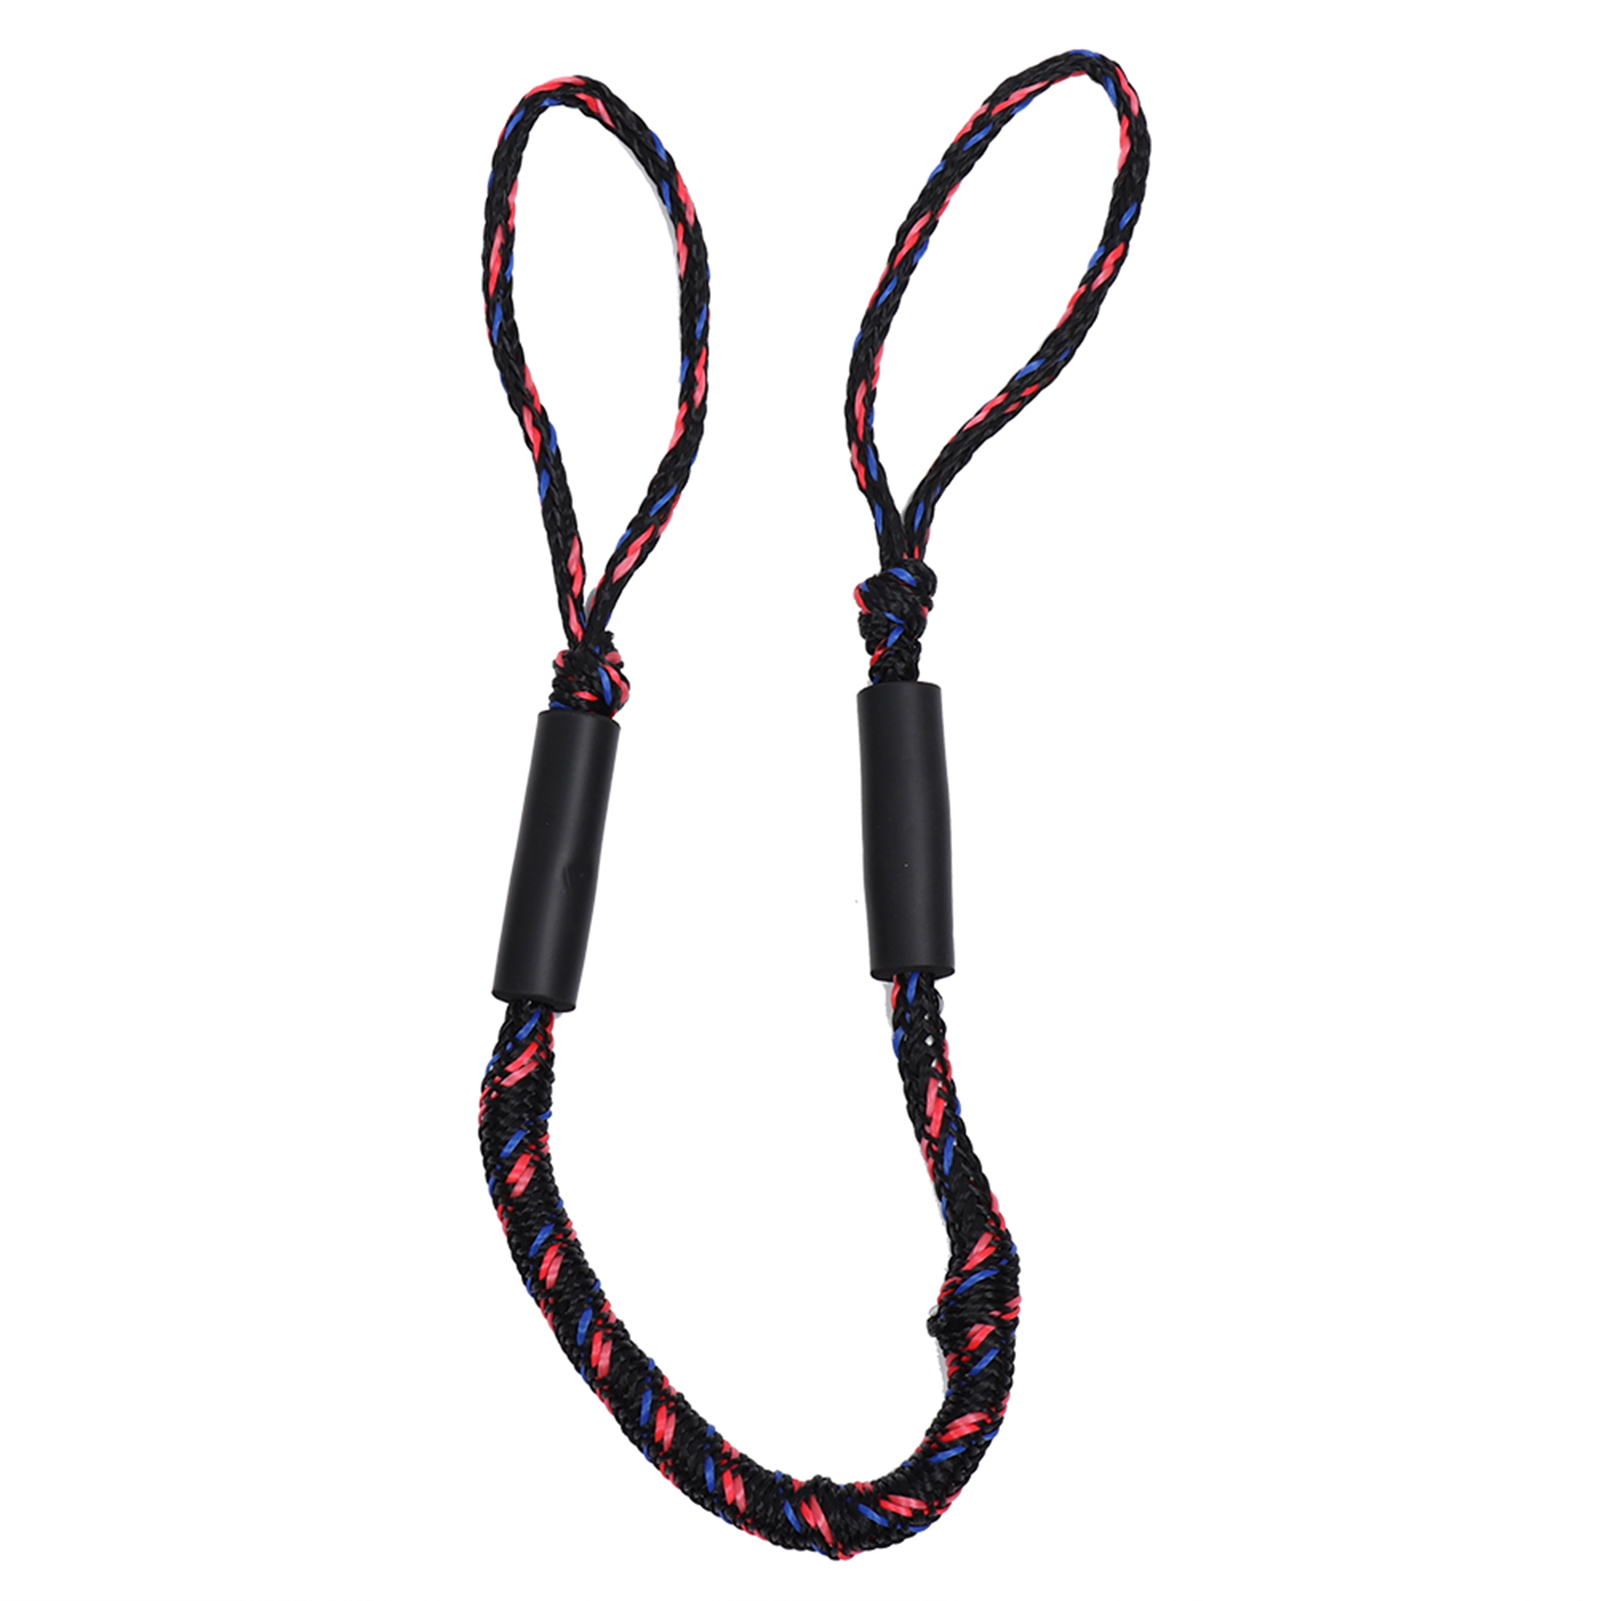 2Pcs 3.5-5.5 ft Bungee Dock Line Mooring Stretch Rope for Boat Red Black Wave